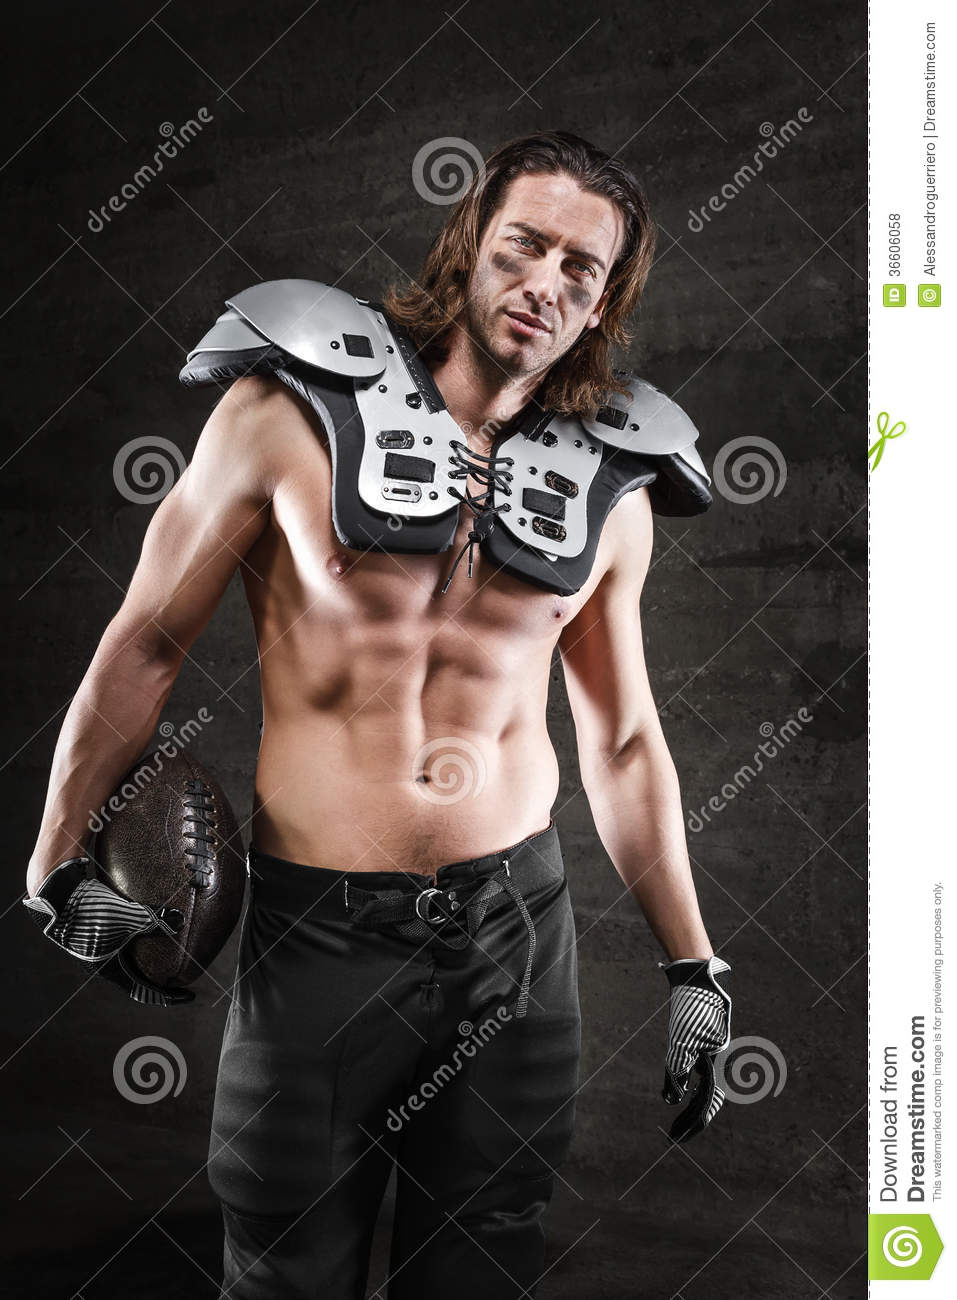 image Football players bare feet photos gay sexy